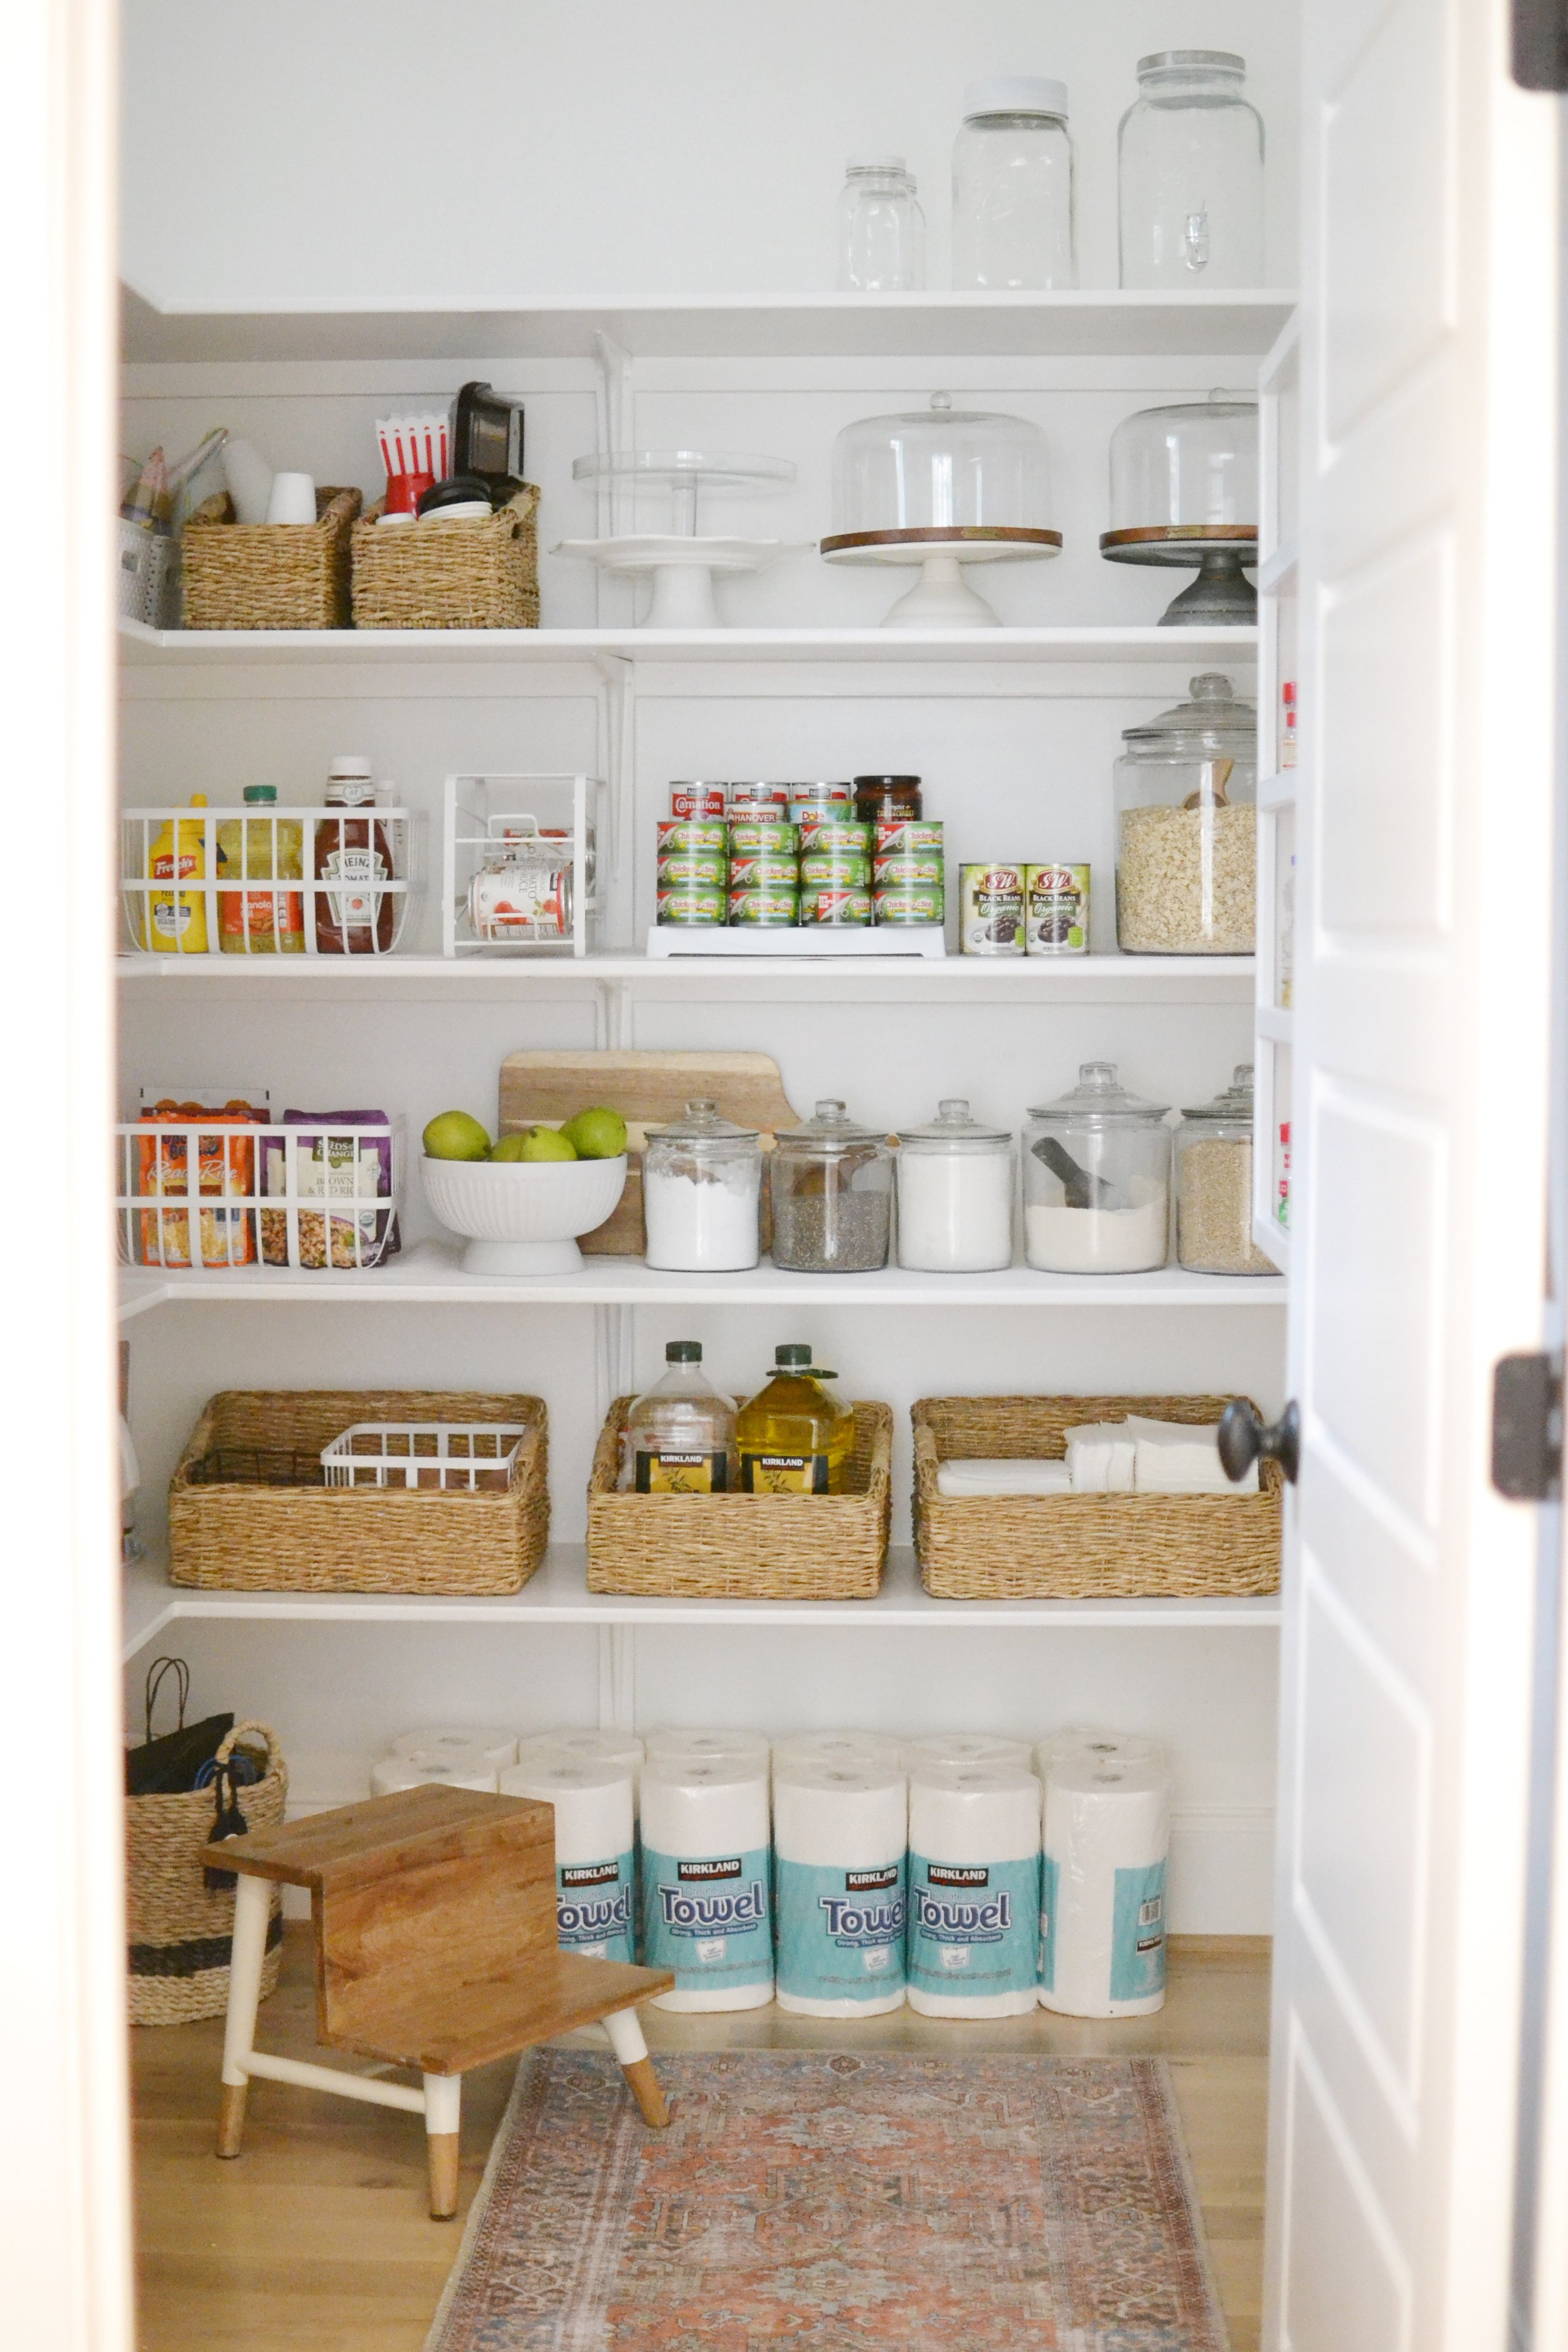 Our Home: The Pantry + How I Organized On a Budget